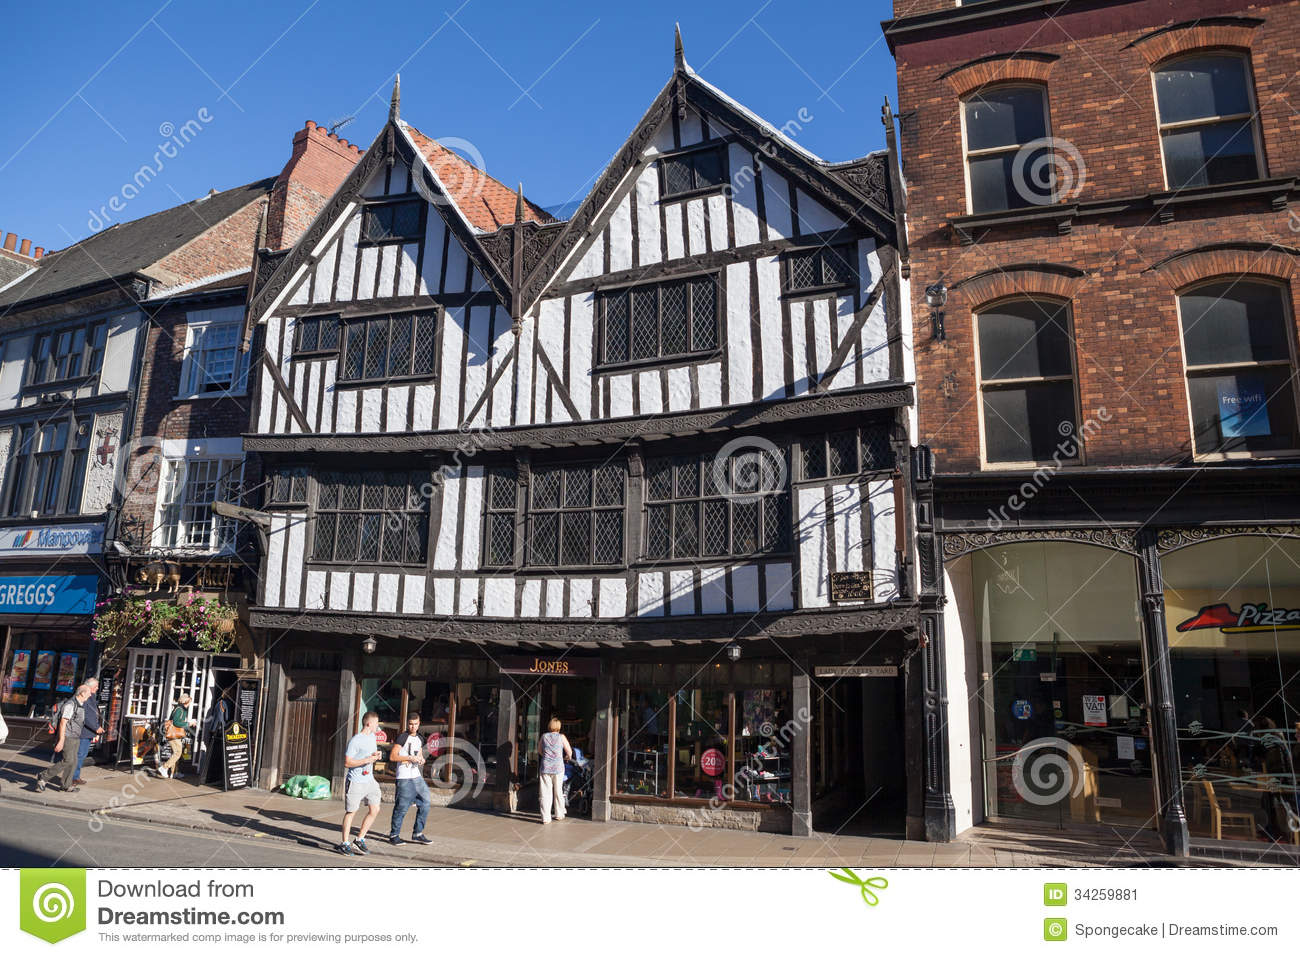 York United Kingdom  city pictures gallery : York, United Kingdom September 22, 2013: View at York's oldest Tudor ...